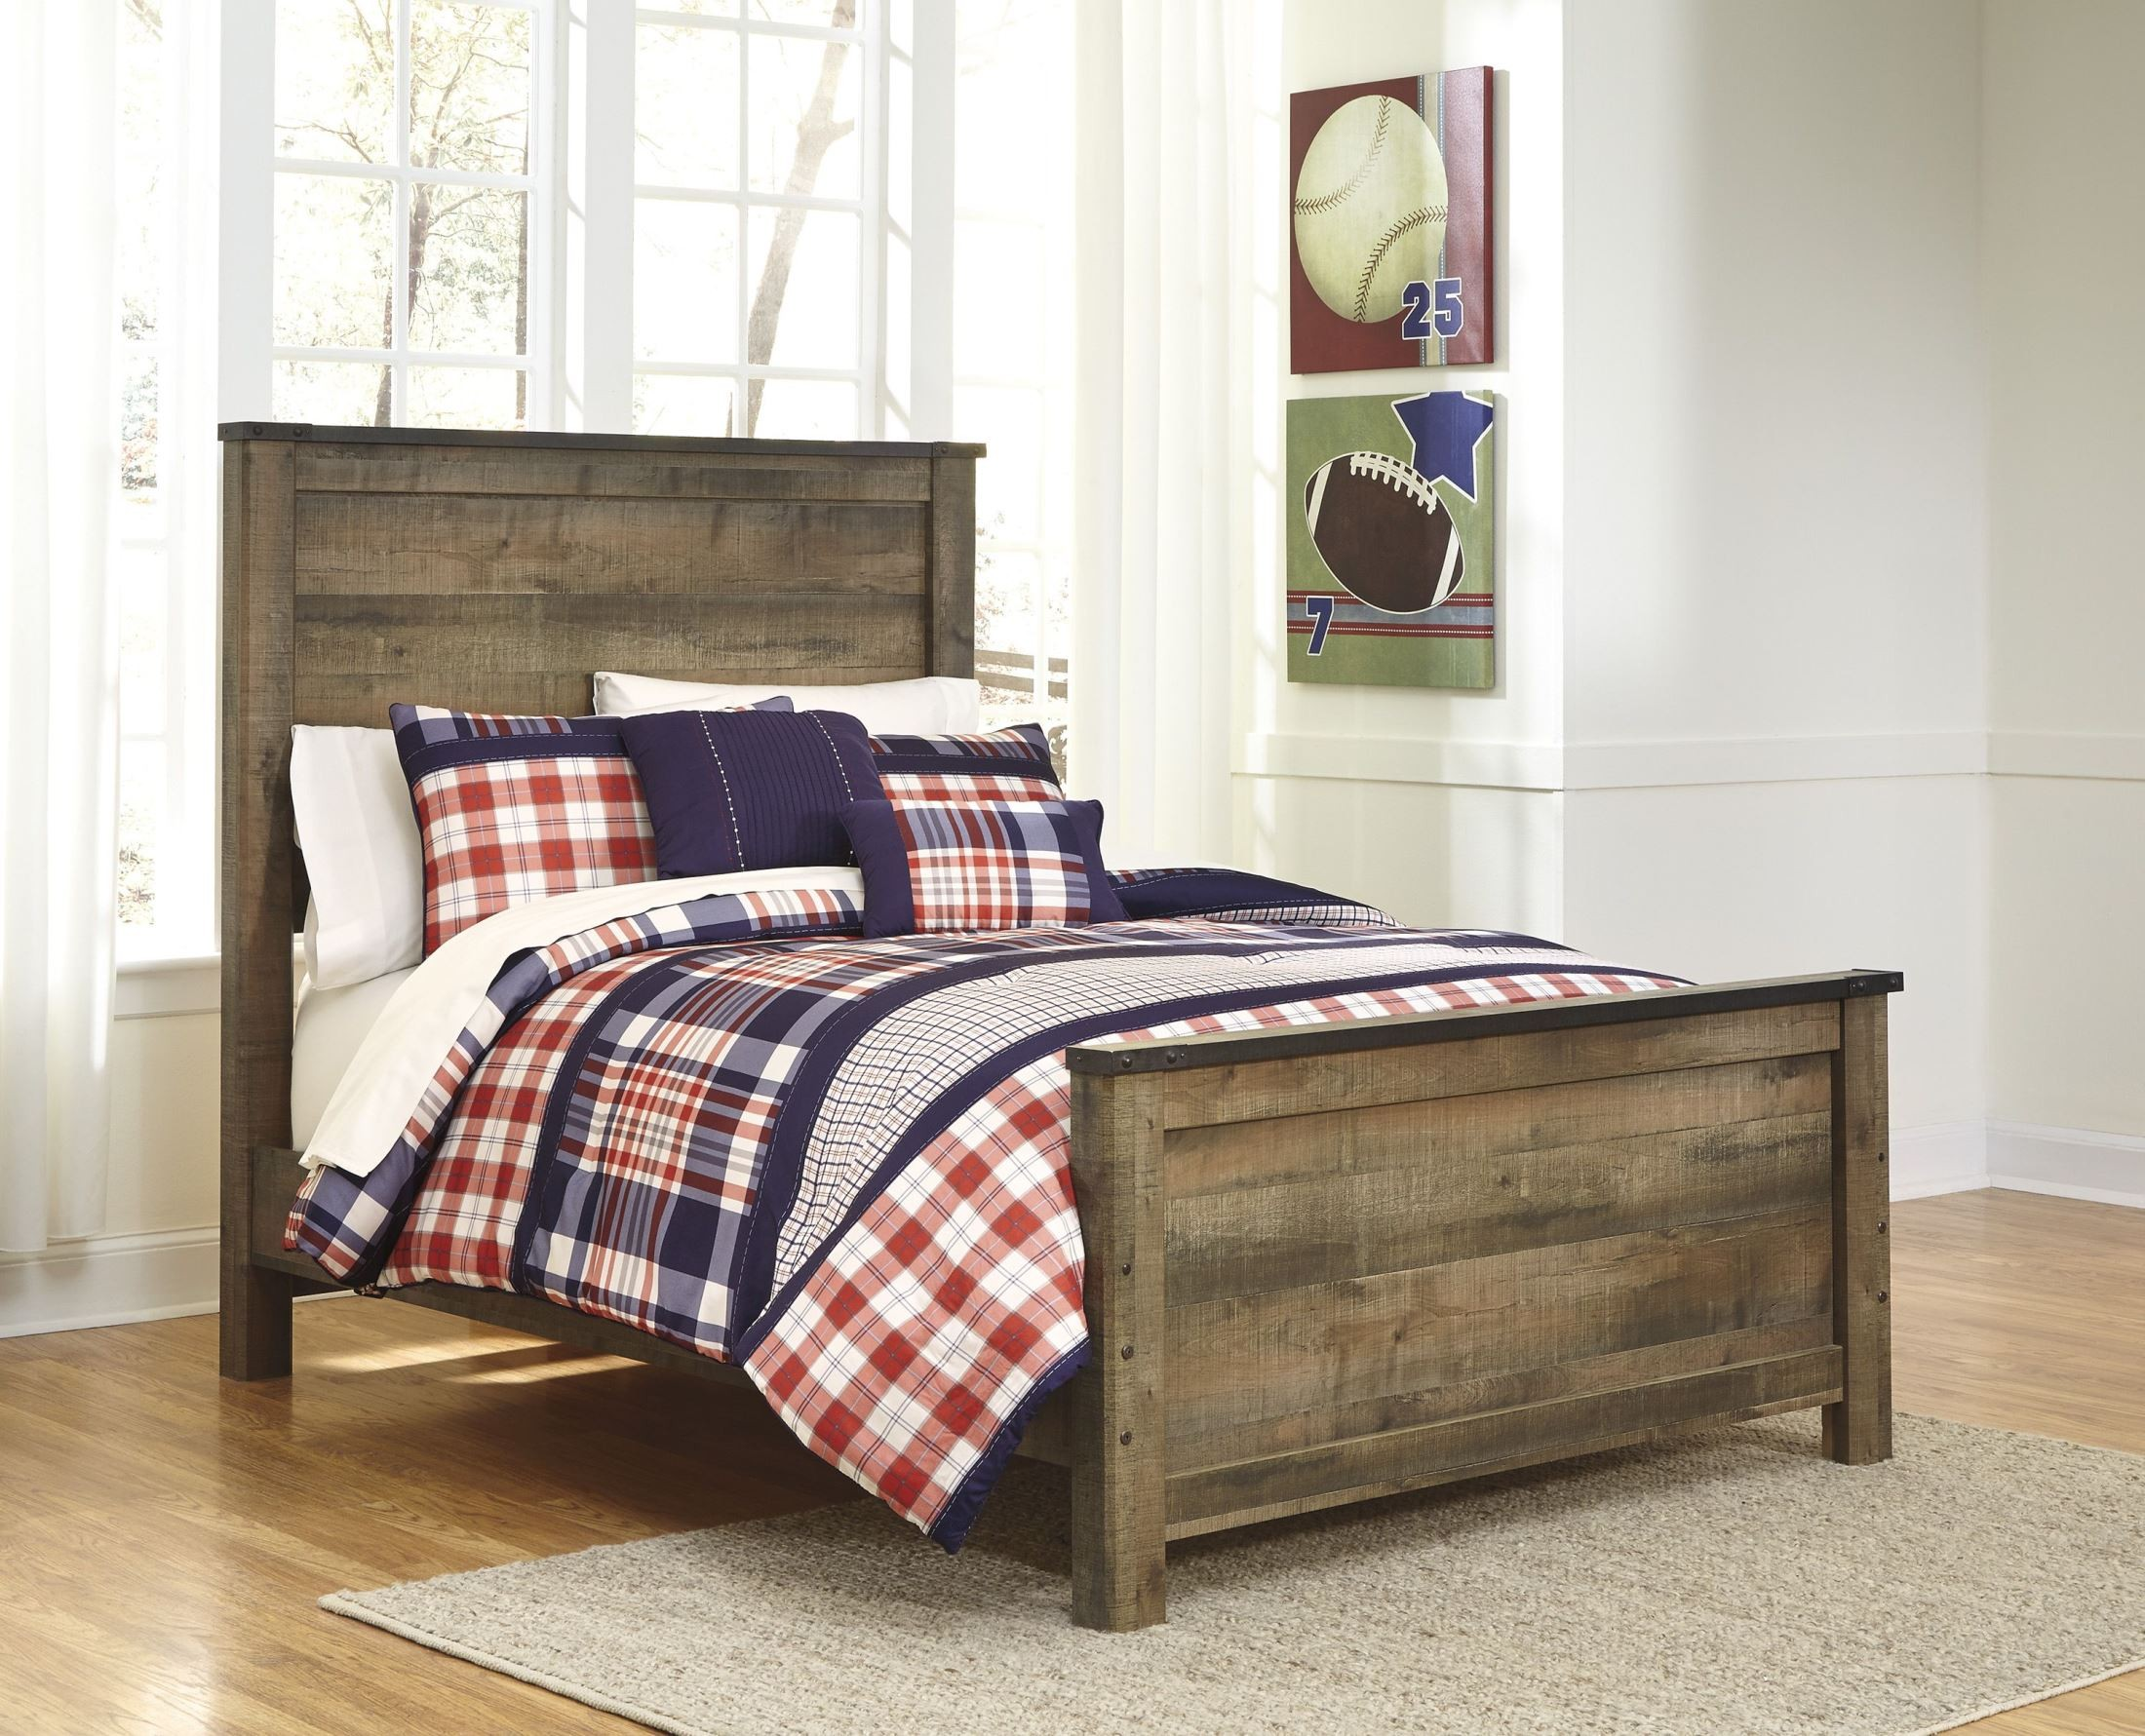 Trinell Brown King Panel Bed From Ashley B446 56 58 97 Coleman Furniture